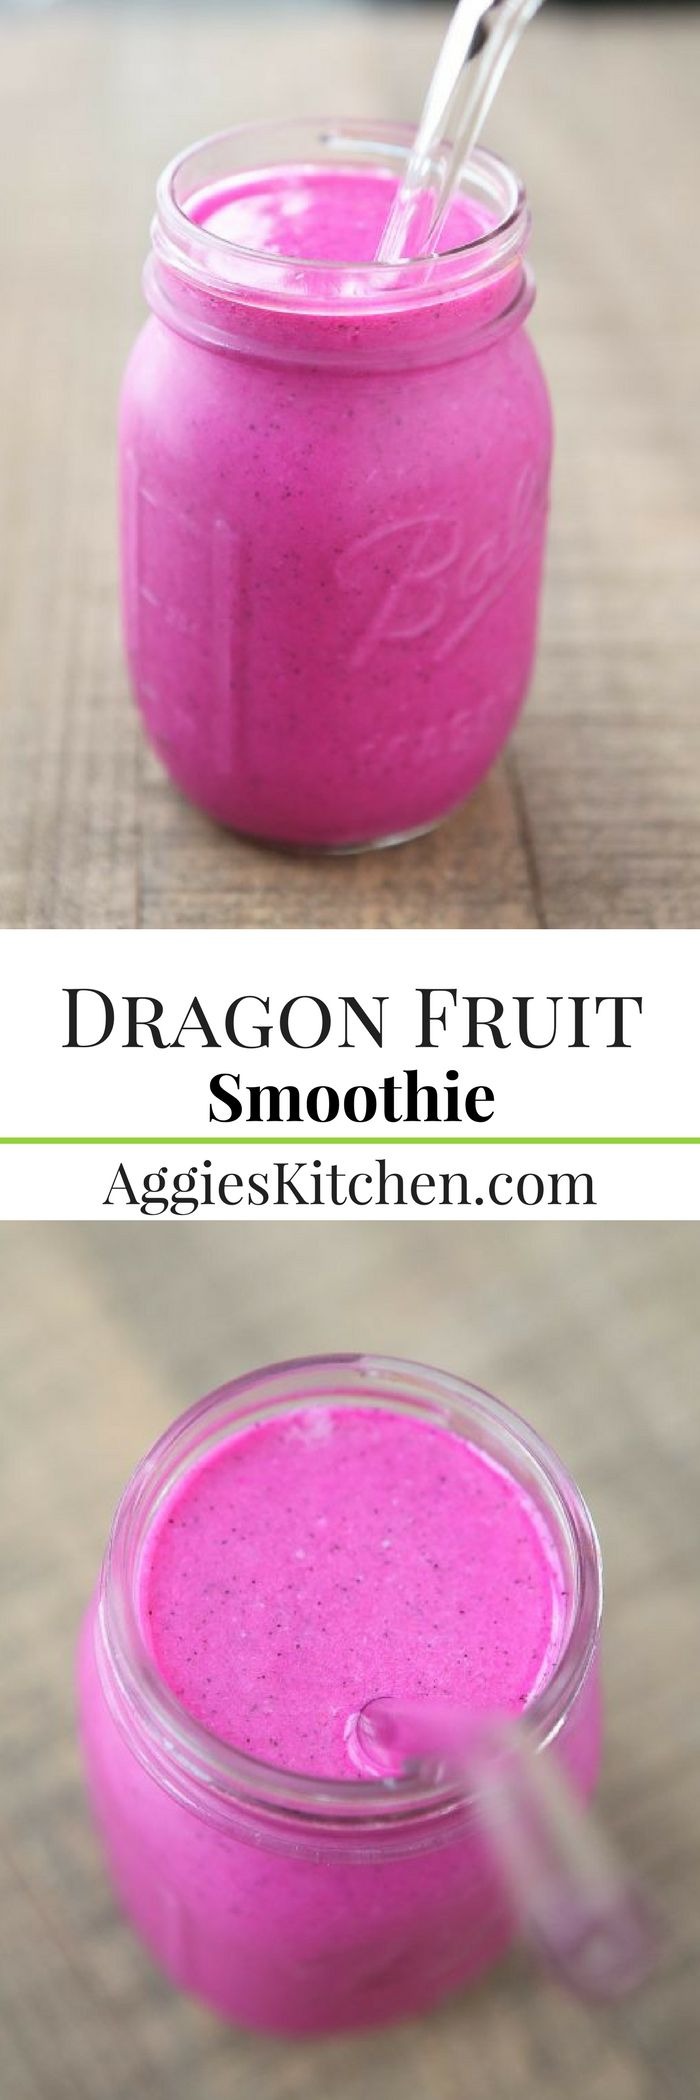 Give your body a boost of nutrition and hydration with this gorgeous Dragon Fruit Smoothie.